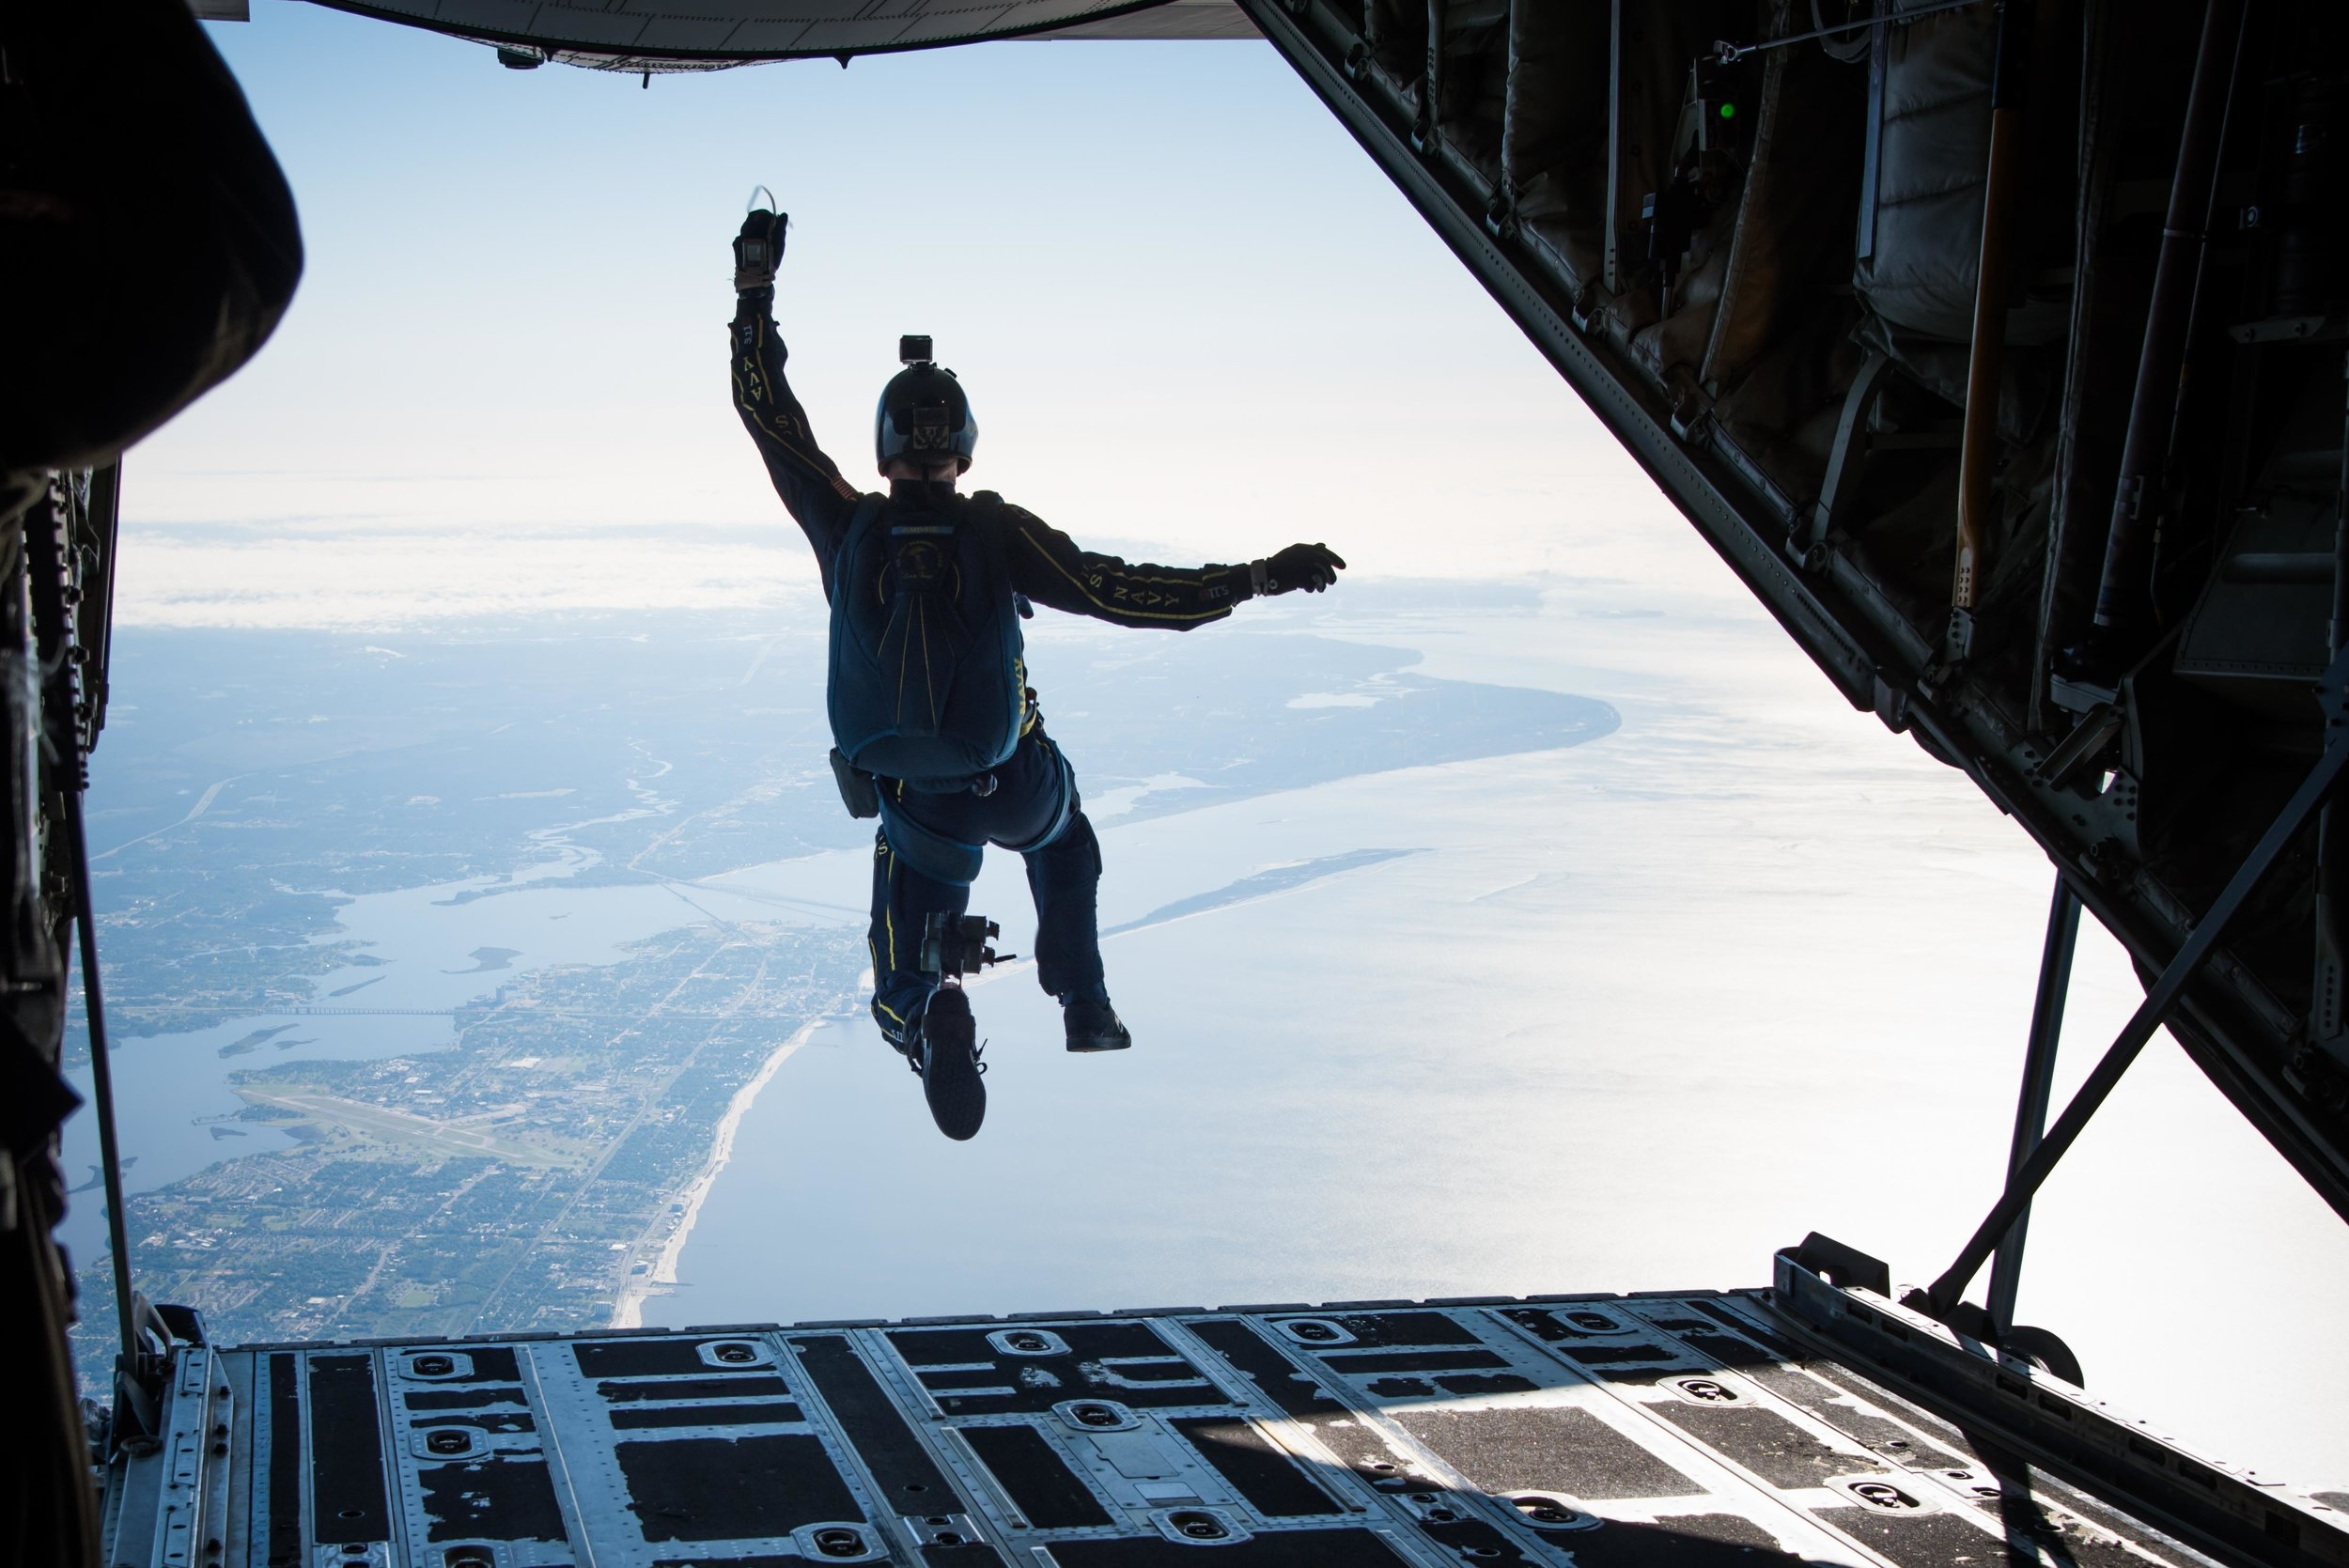 Last year I had the opportunity to fly with the Air Force Reserve's 815th Airlift Squadron Flying Jennies and the U.S. Navy Leap Frogs for a training mission and demonstration for part of the Mississippi Gulf Coast's Navy Week. This photo pretty much sums up how I felt to be able to take this photo.